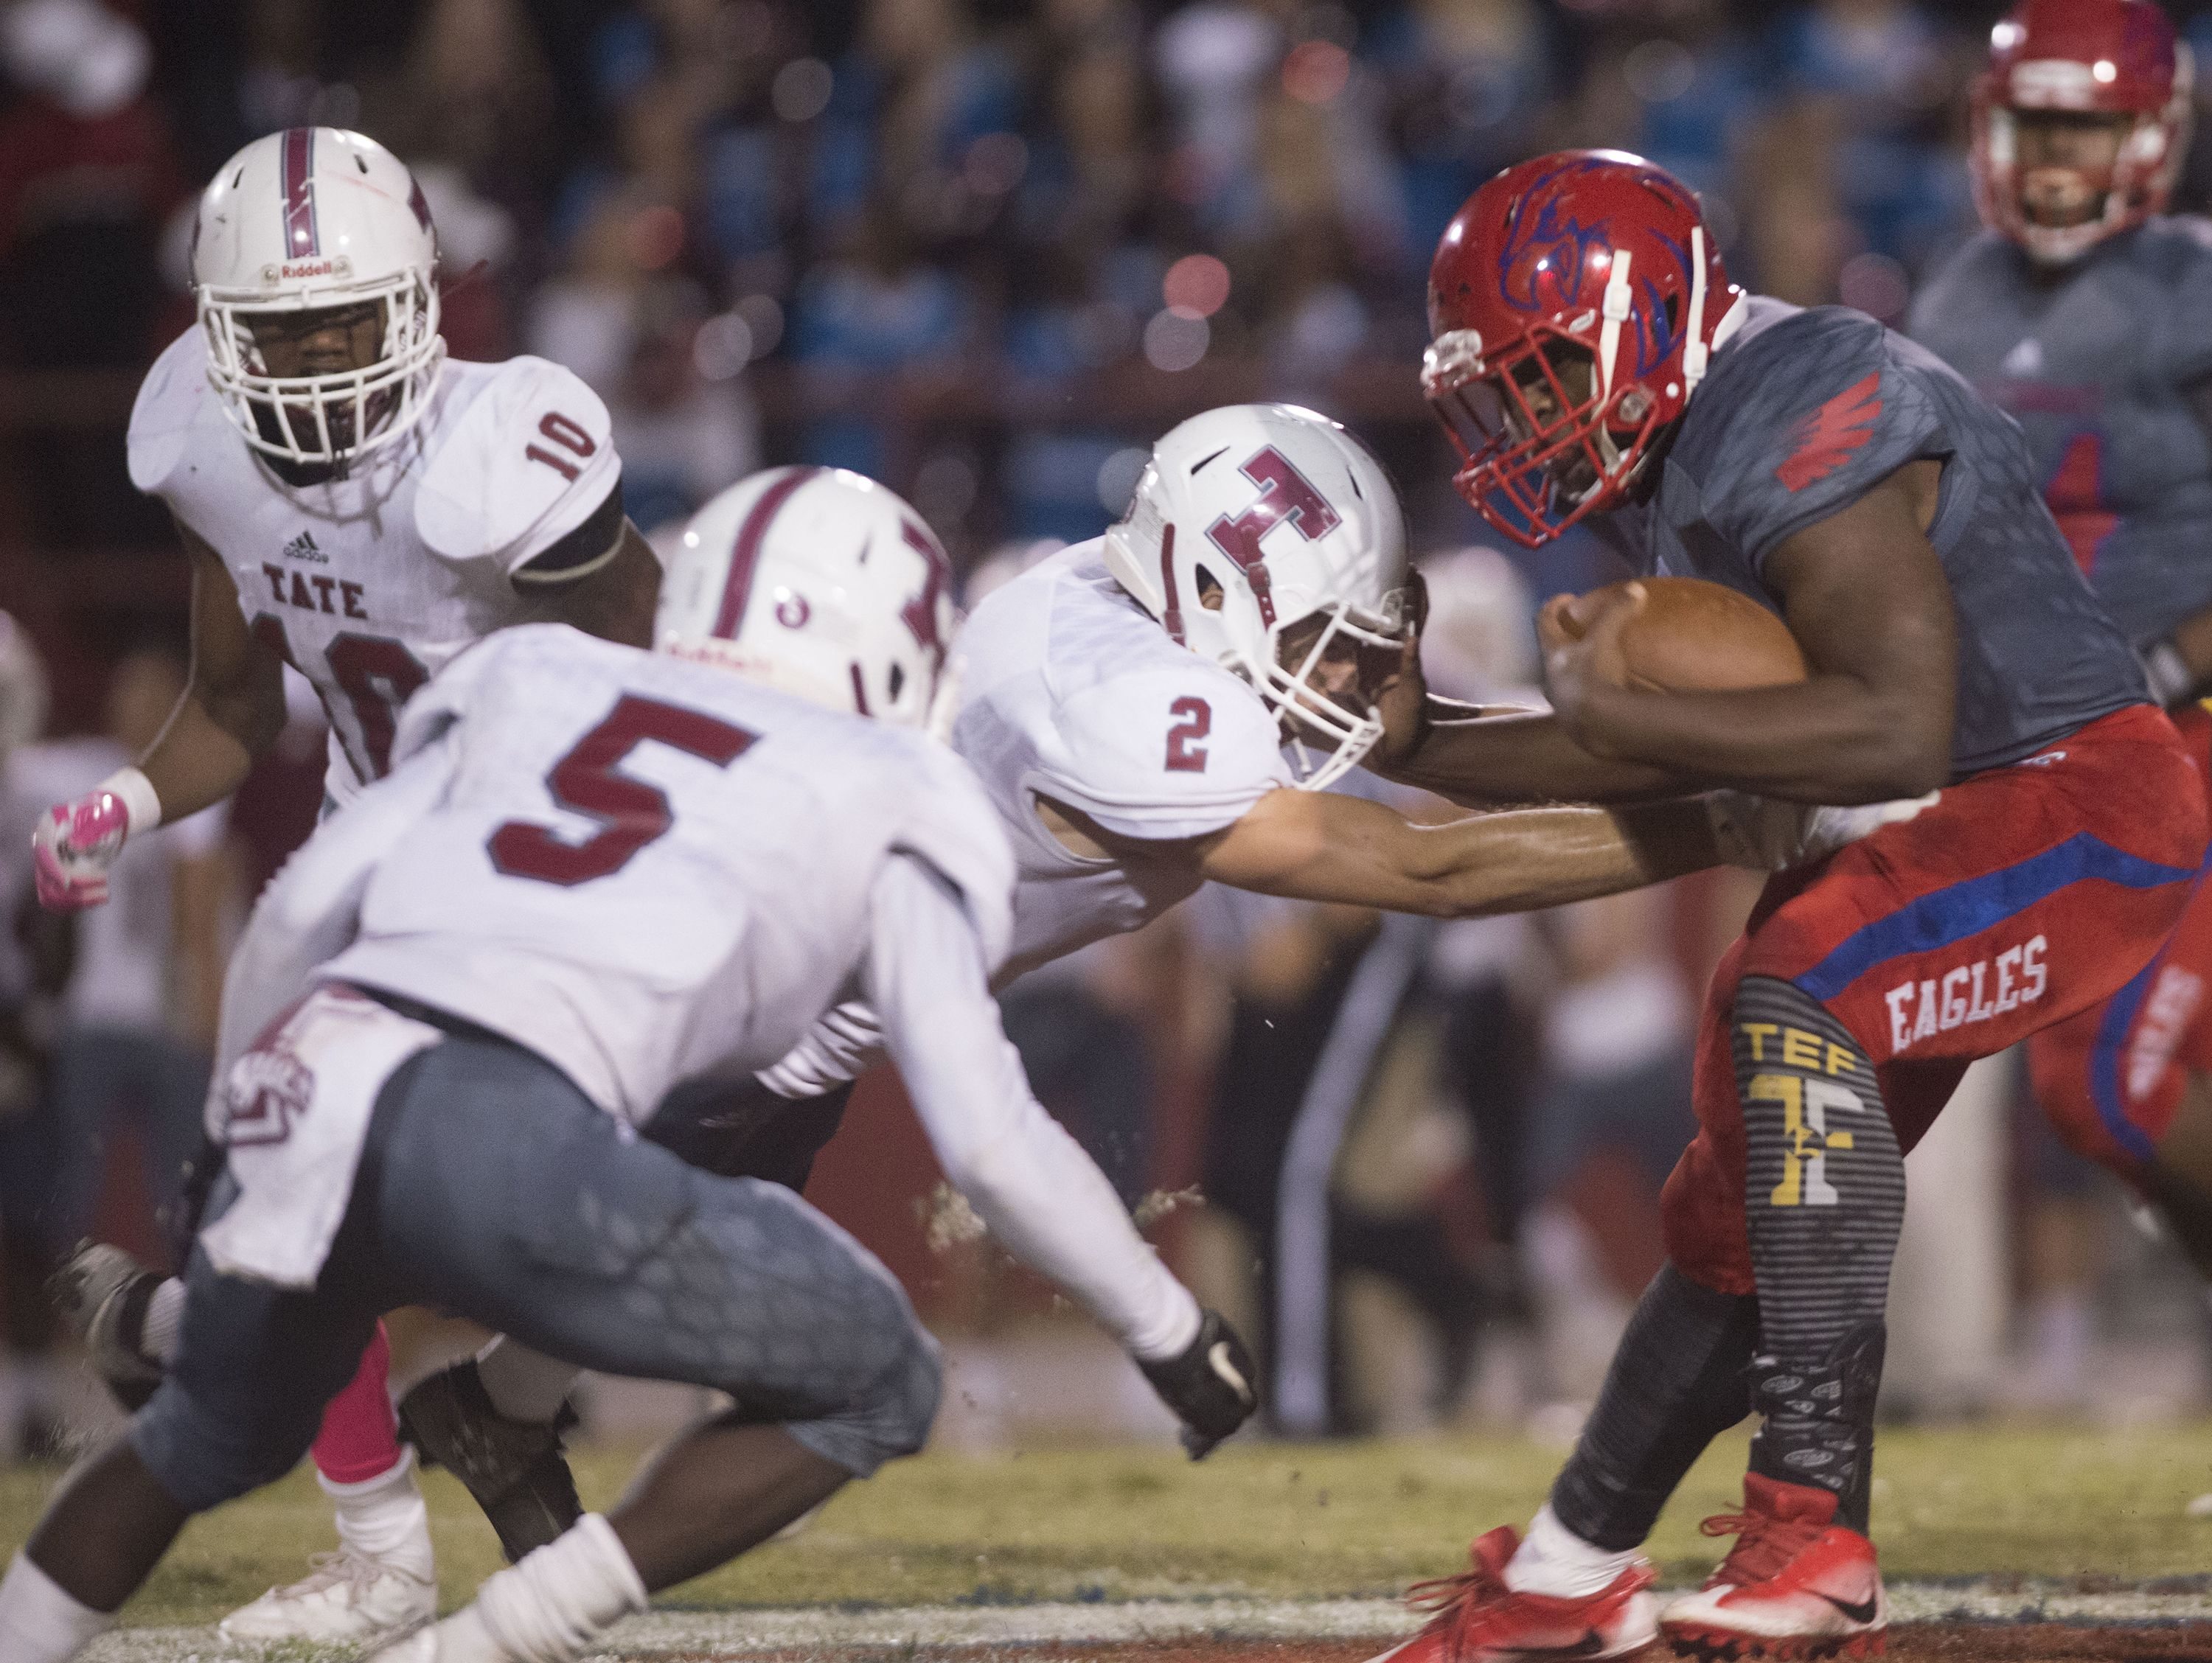 Tate High School's Alex Young, (No.2) and Bishod Clark, (No.5) stops Pine Forest High School's Xavier Saulsberry, (No. 15) behind the line for a loss during Friday night's district game.